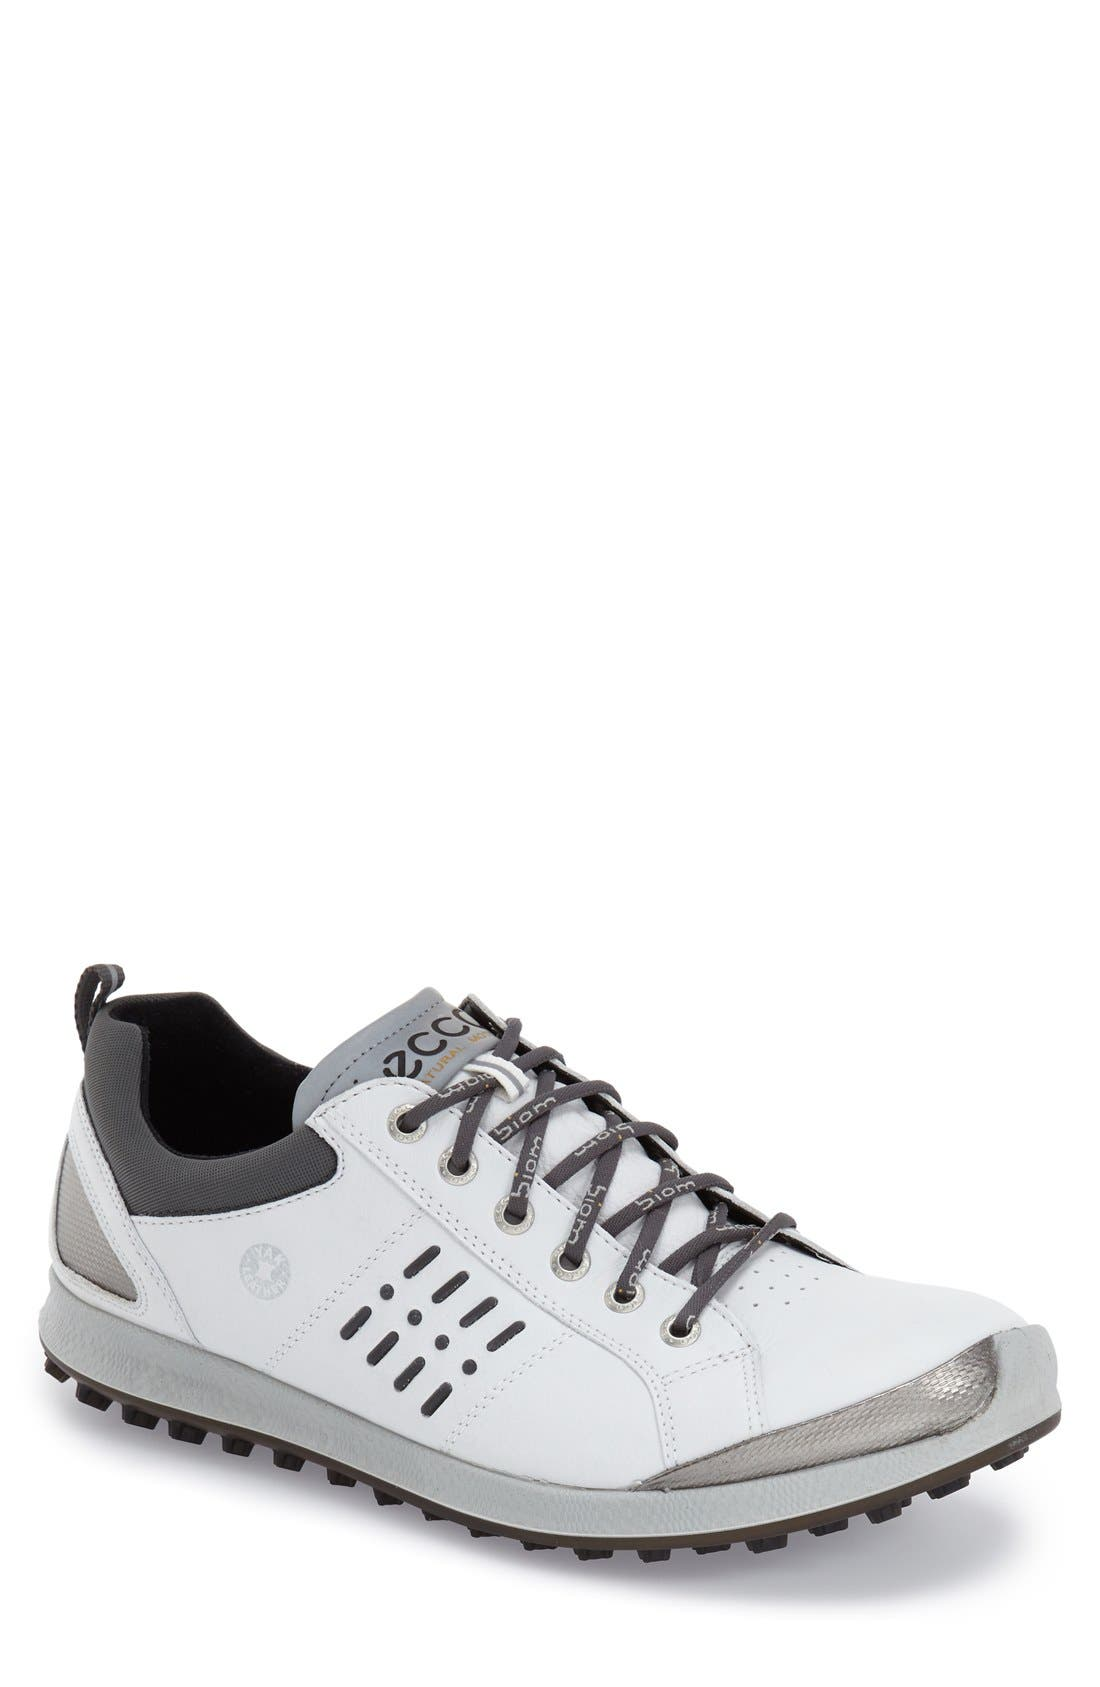 ECCO 'Biom Hybrid 2 GTX' Golf Shoe (Men)